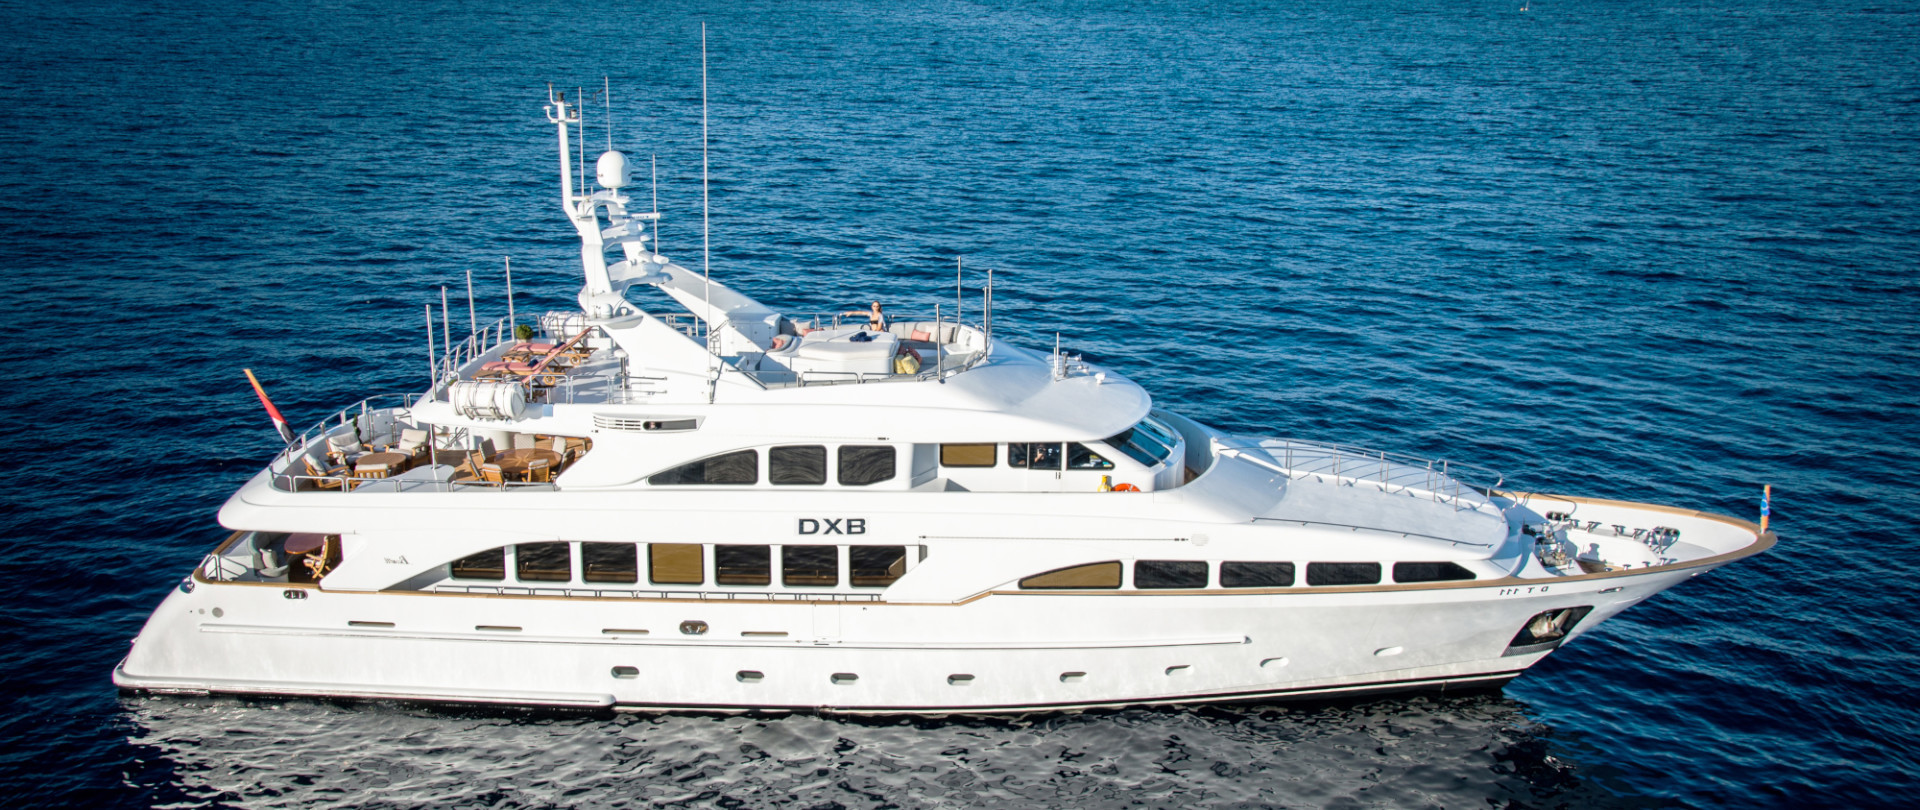 DXB - Available for event charters photo 1